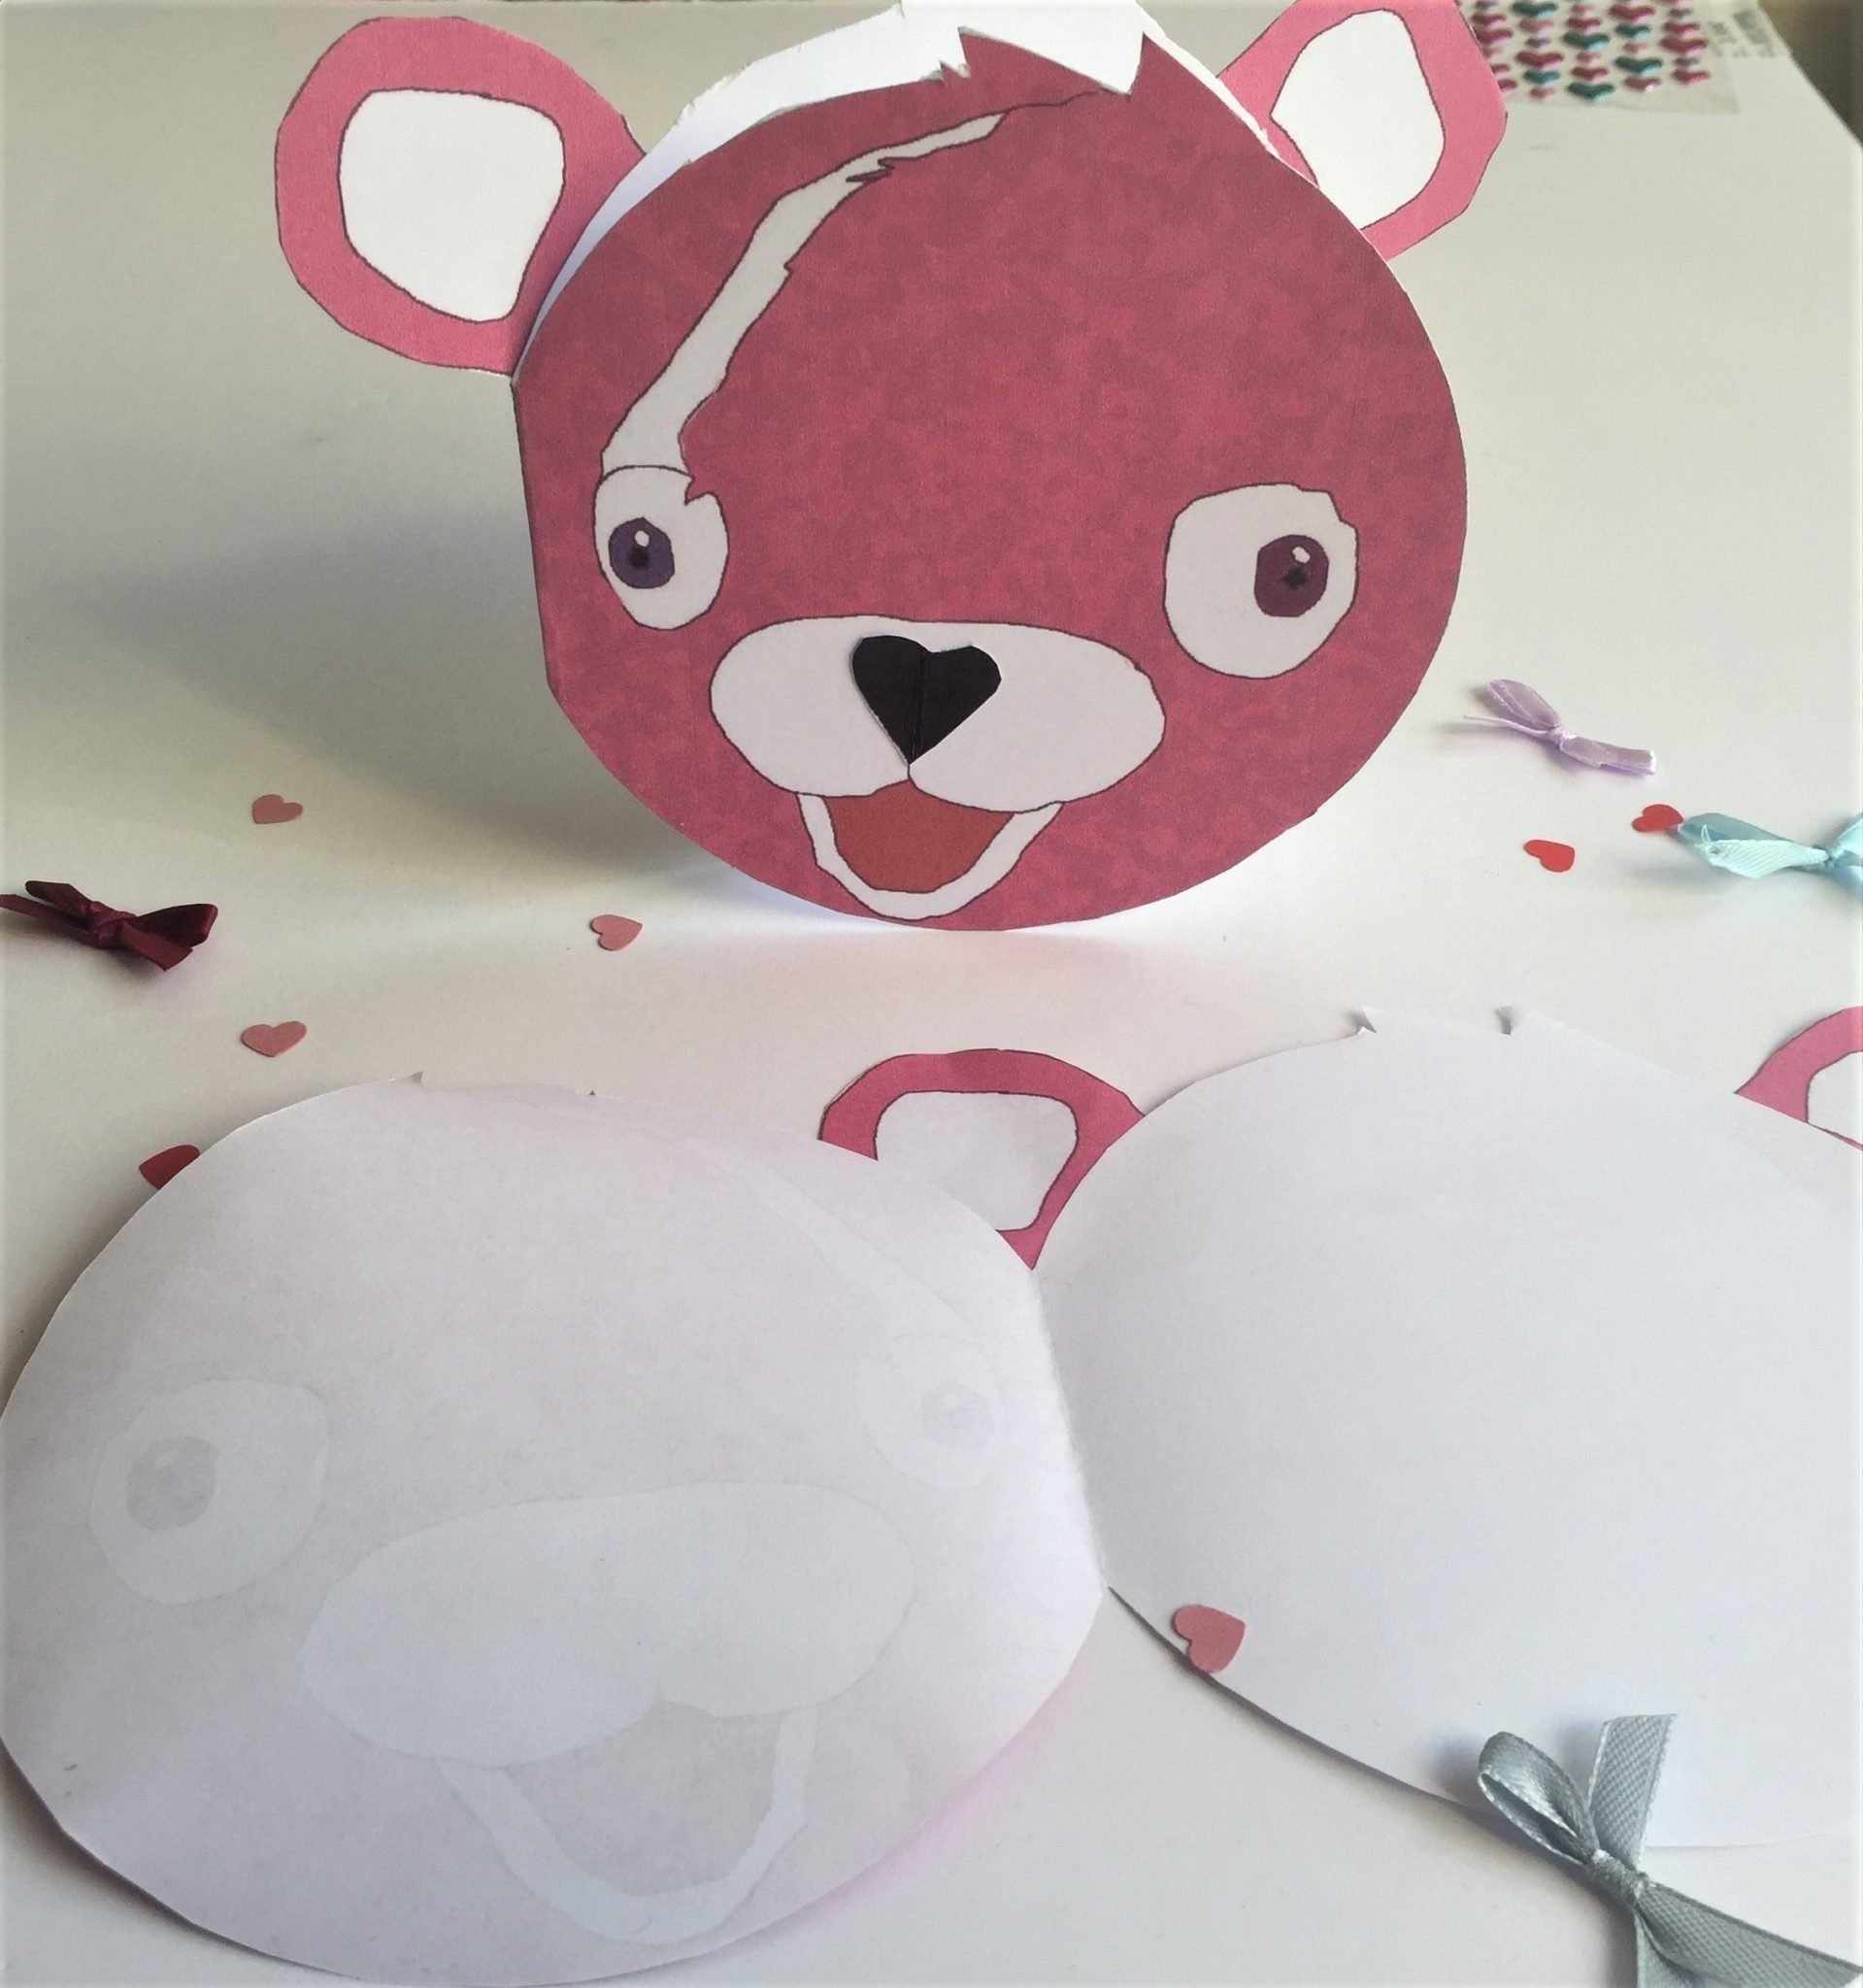 Cuddle Team Leader Valentines Card for kids - Cuddle Team Leader Valentines Card for Kids